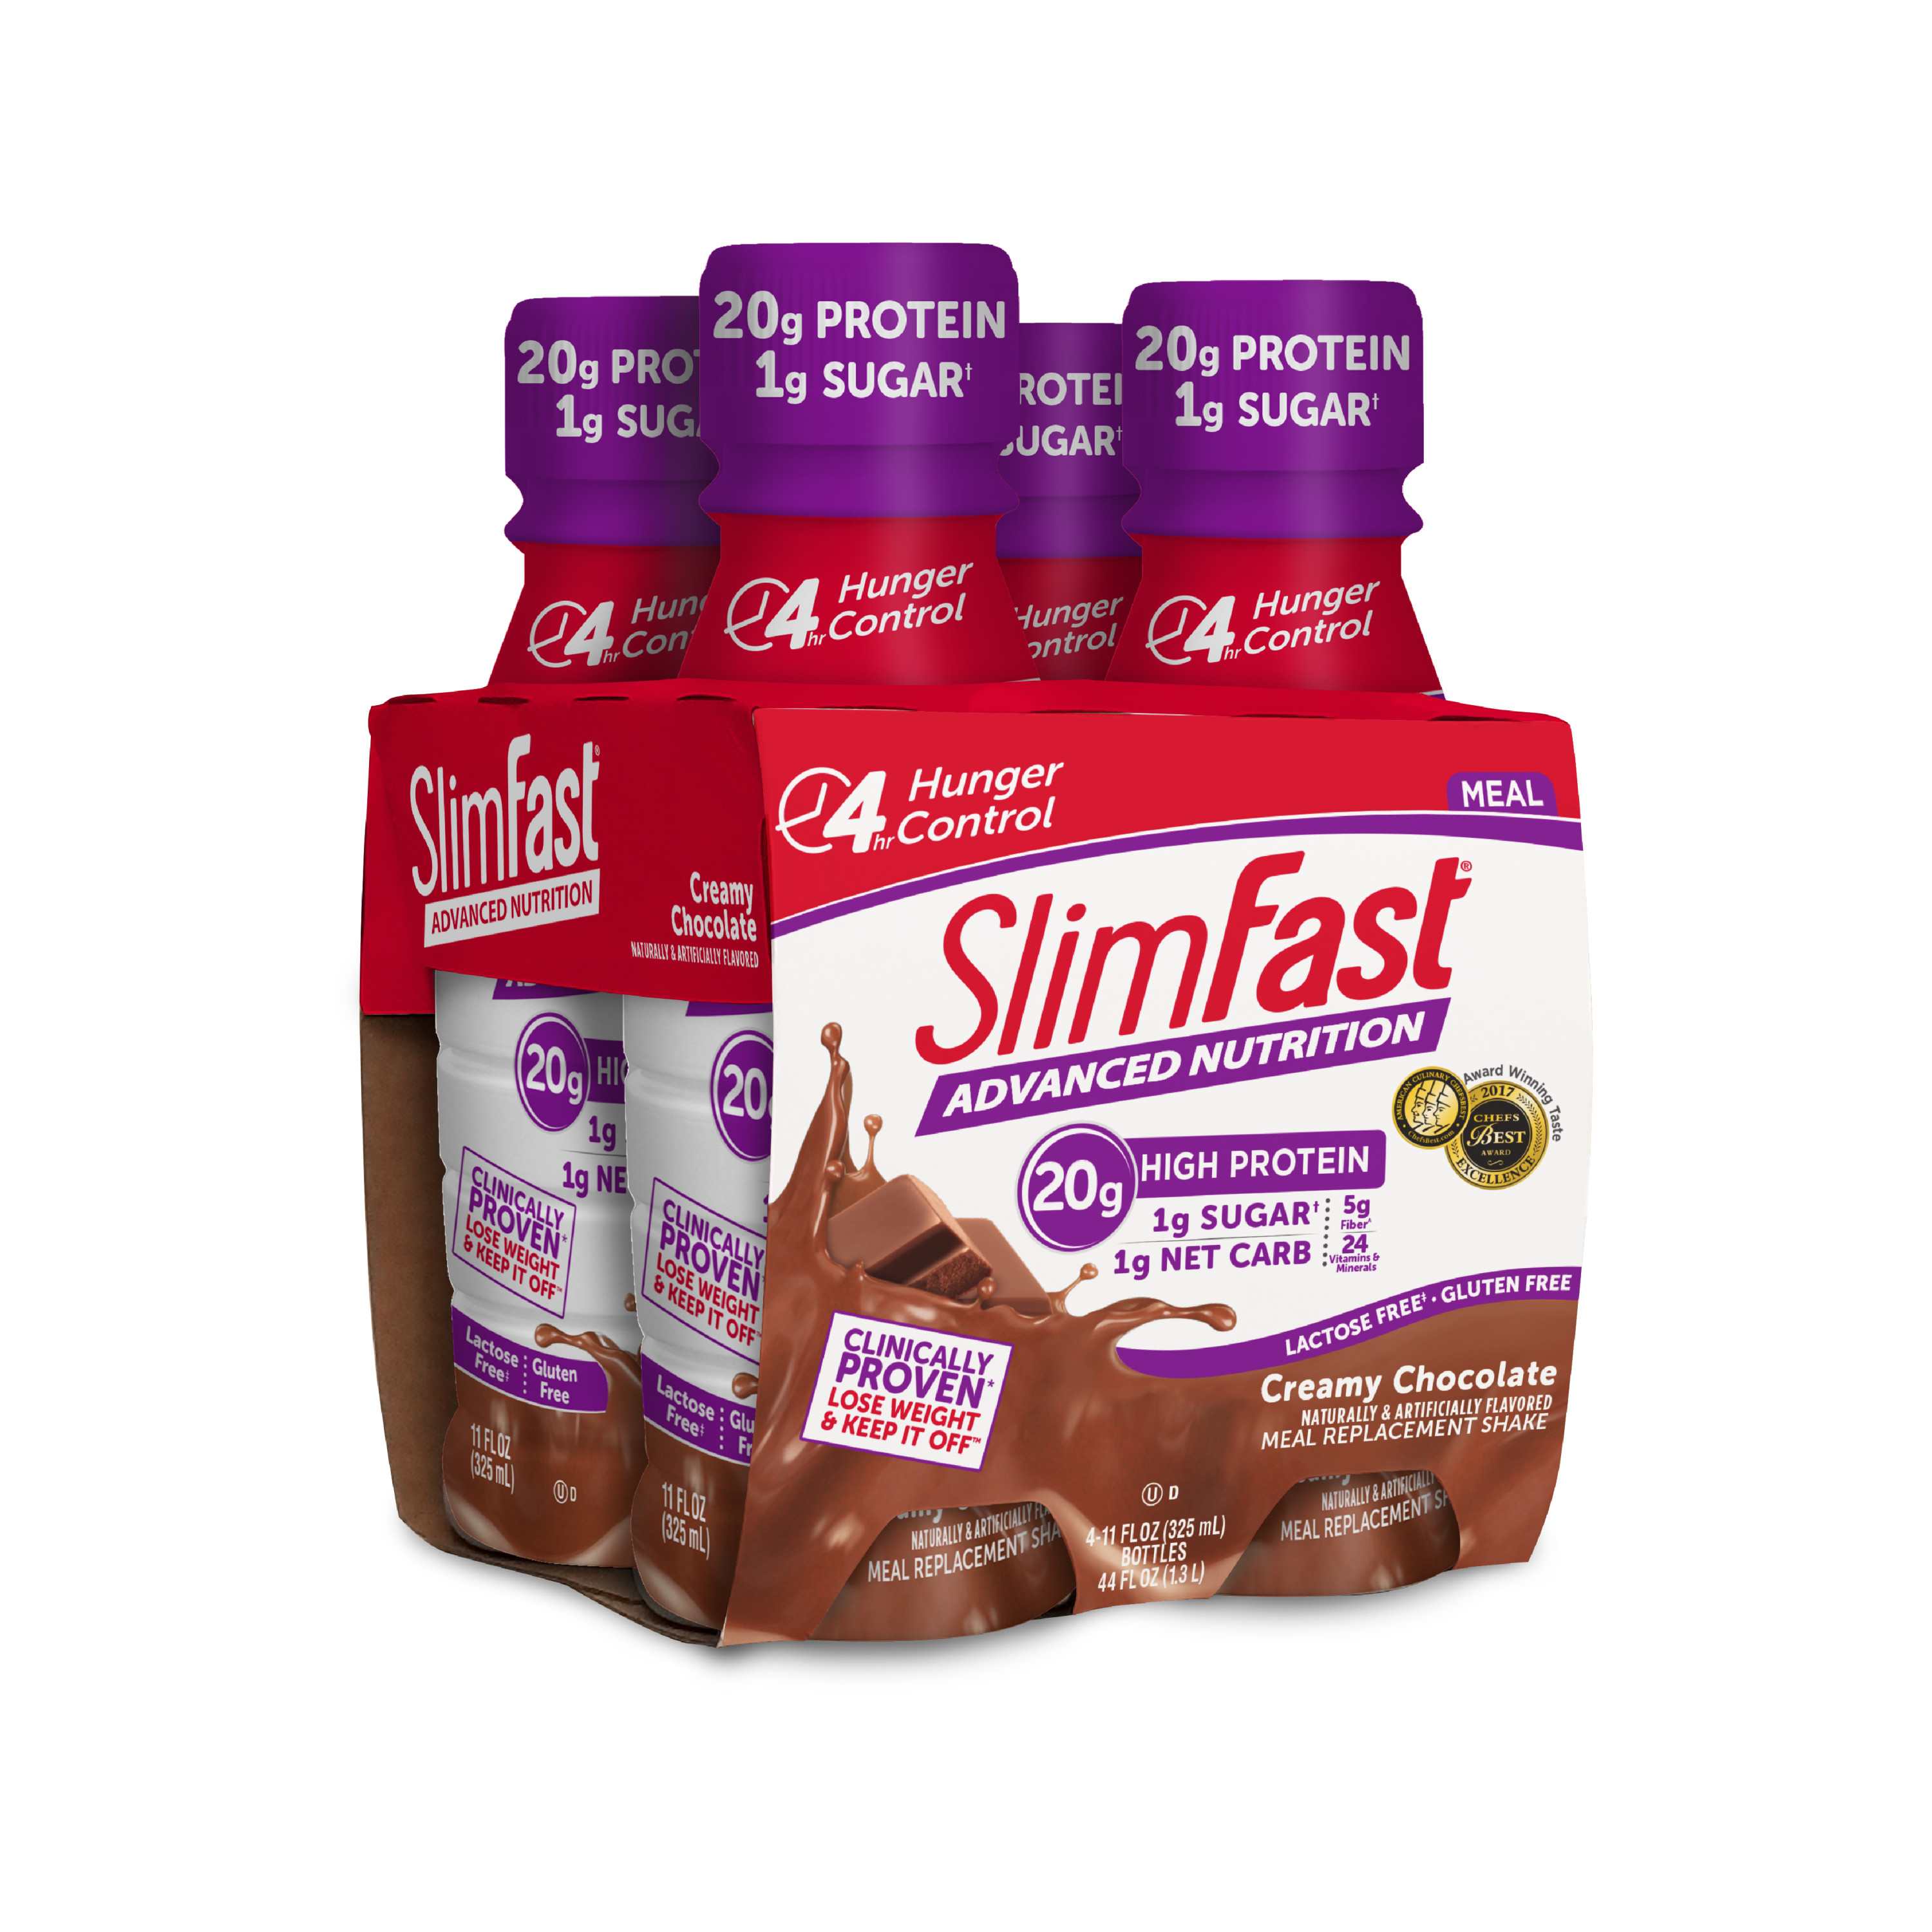 SlimFast Advanced Nutrition High Protein Ready to Drink Meal Replacement Shakes, Creamy Chocolate, 11 fl. oz., 4 pack